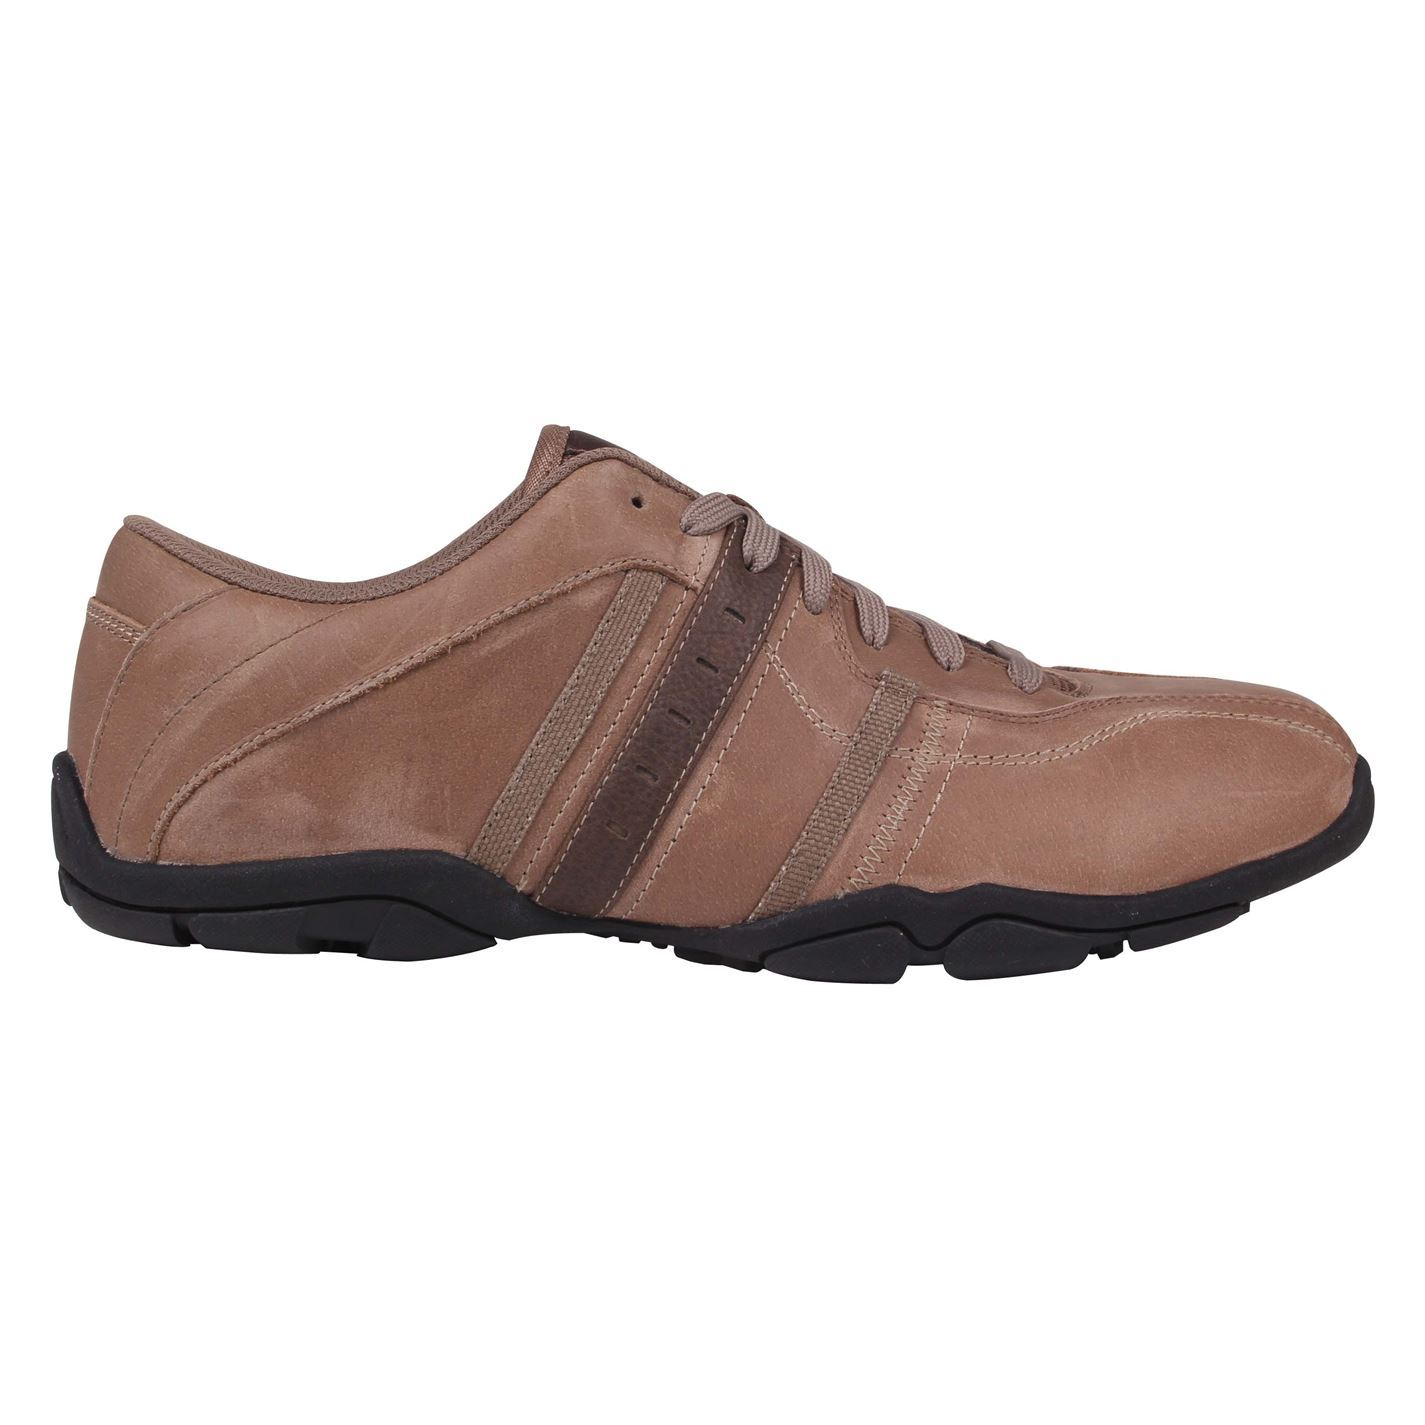 Kangol-Kauna-Trainers-Mens-Athleisure-Footwear-Shoes-Sneakers thumbnail 12